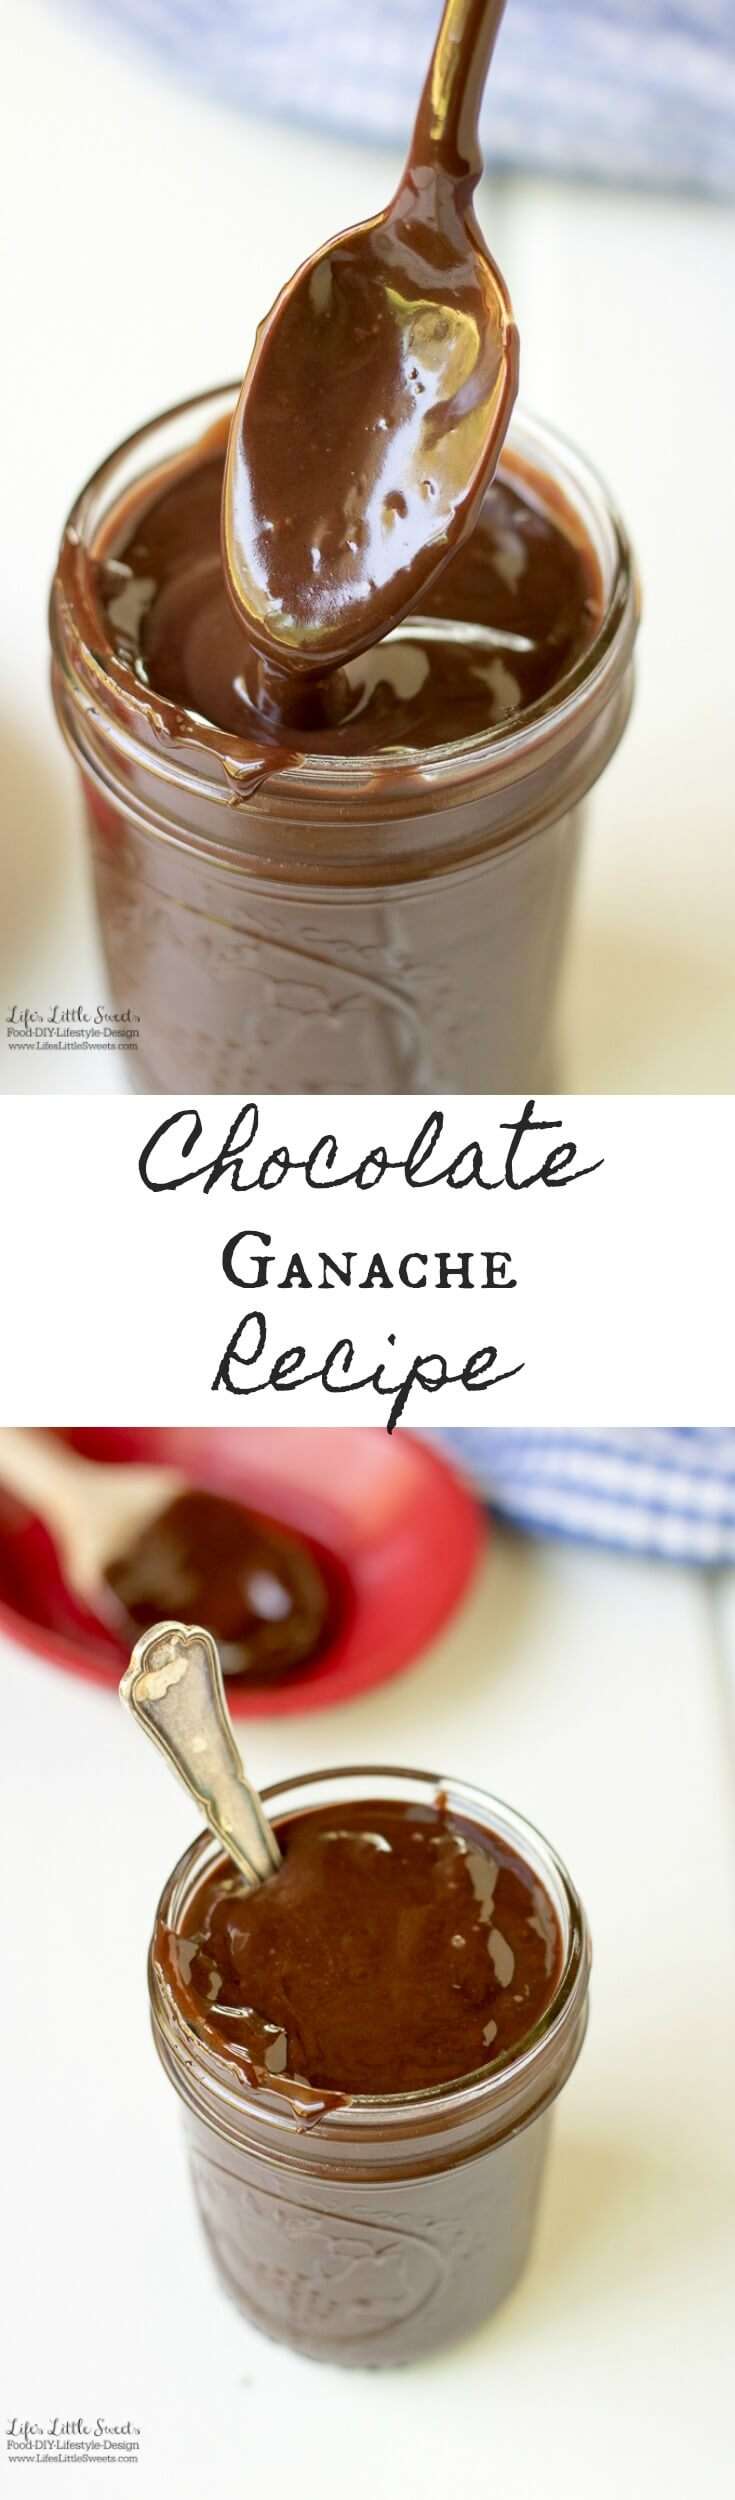 This Chocolate Ganache Recipe is perfect for drizzling over ice cream, cake or your favorite dessert. Only 2 ingredients and a 5 minutes cook time! www.lifeslittlesweets.com